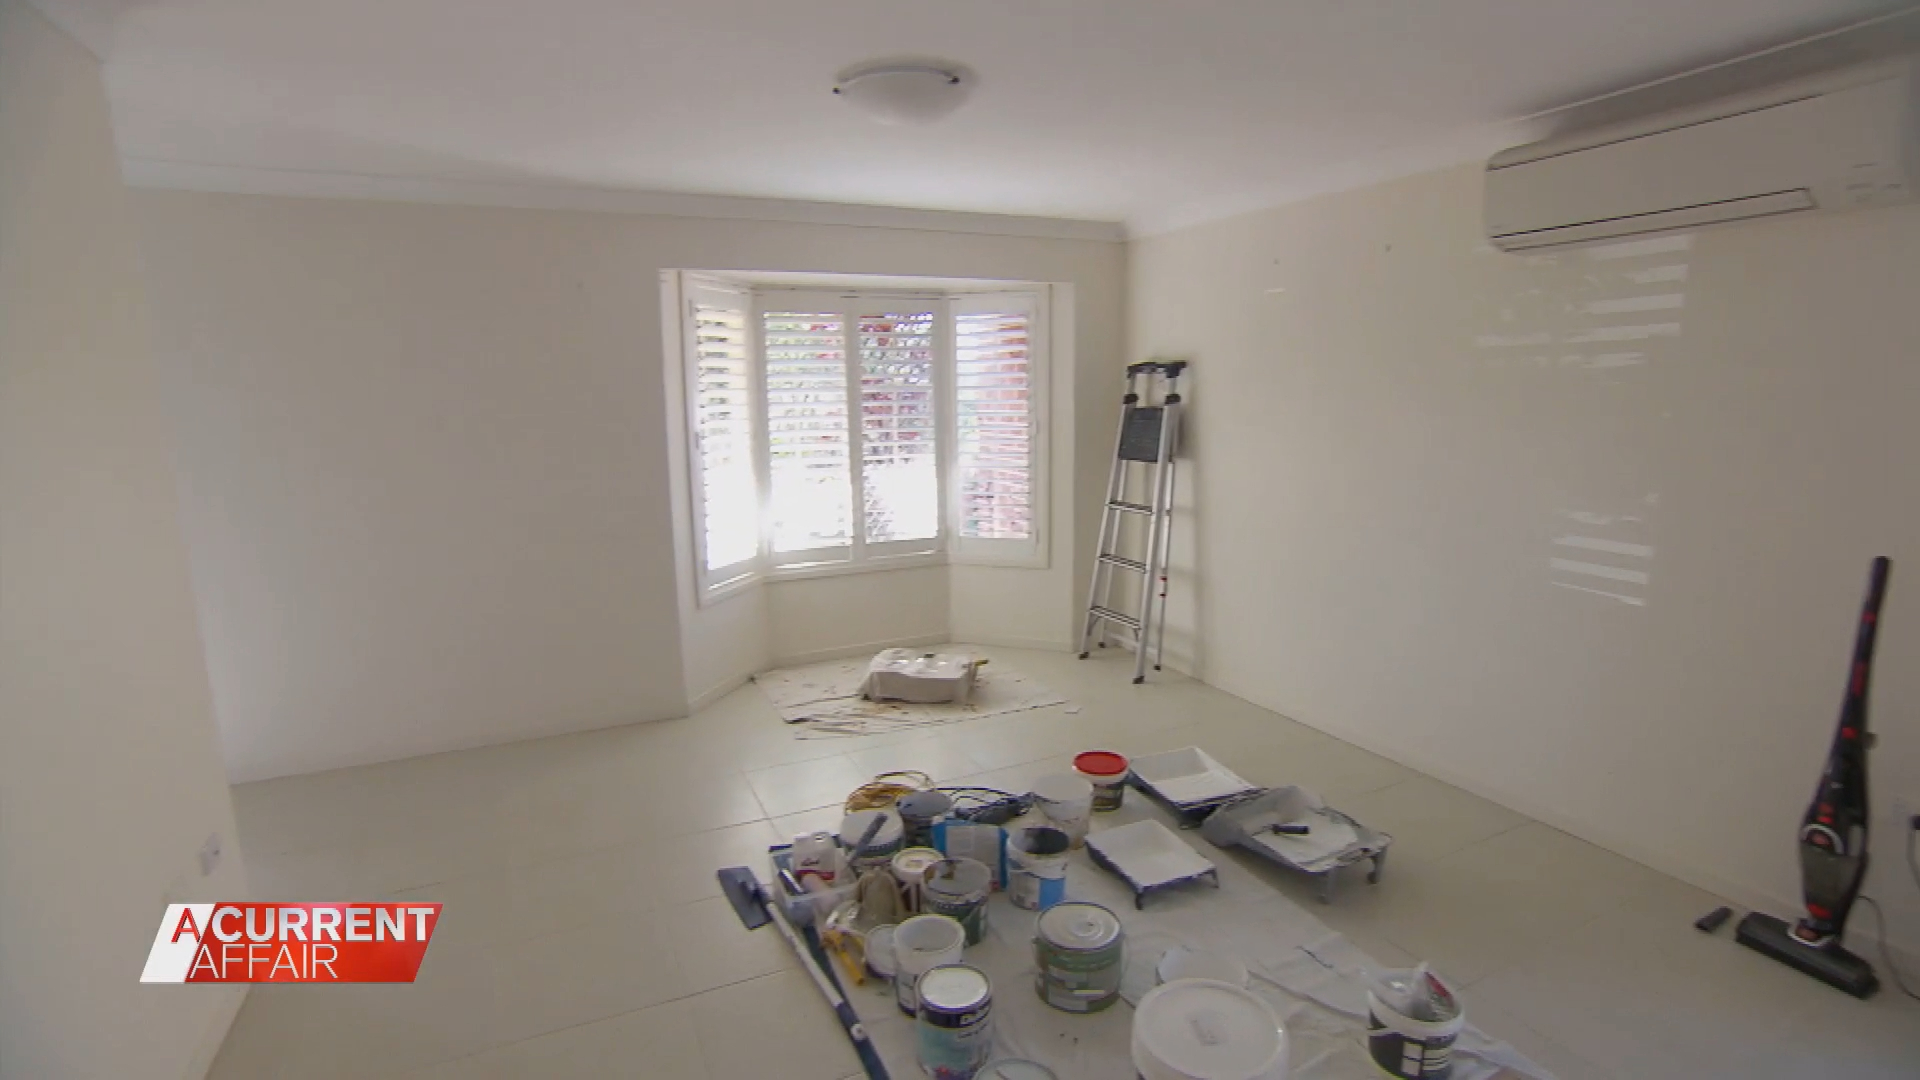 The new finance provider for renovation loans